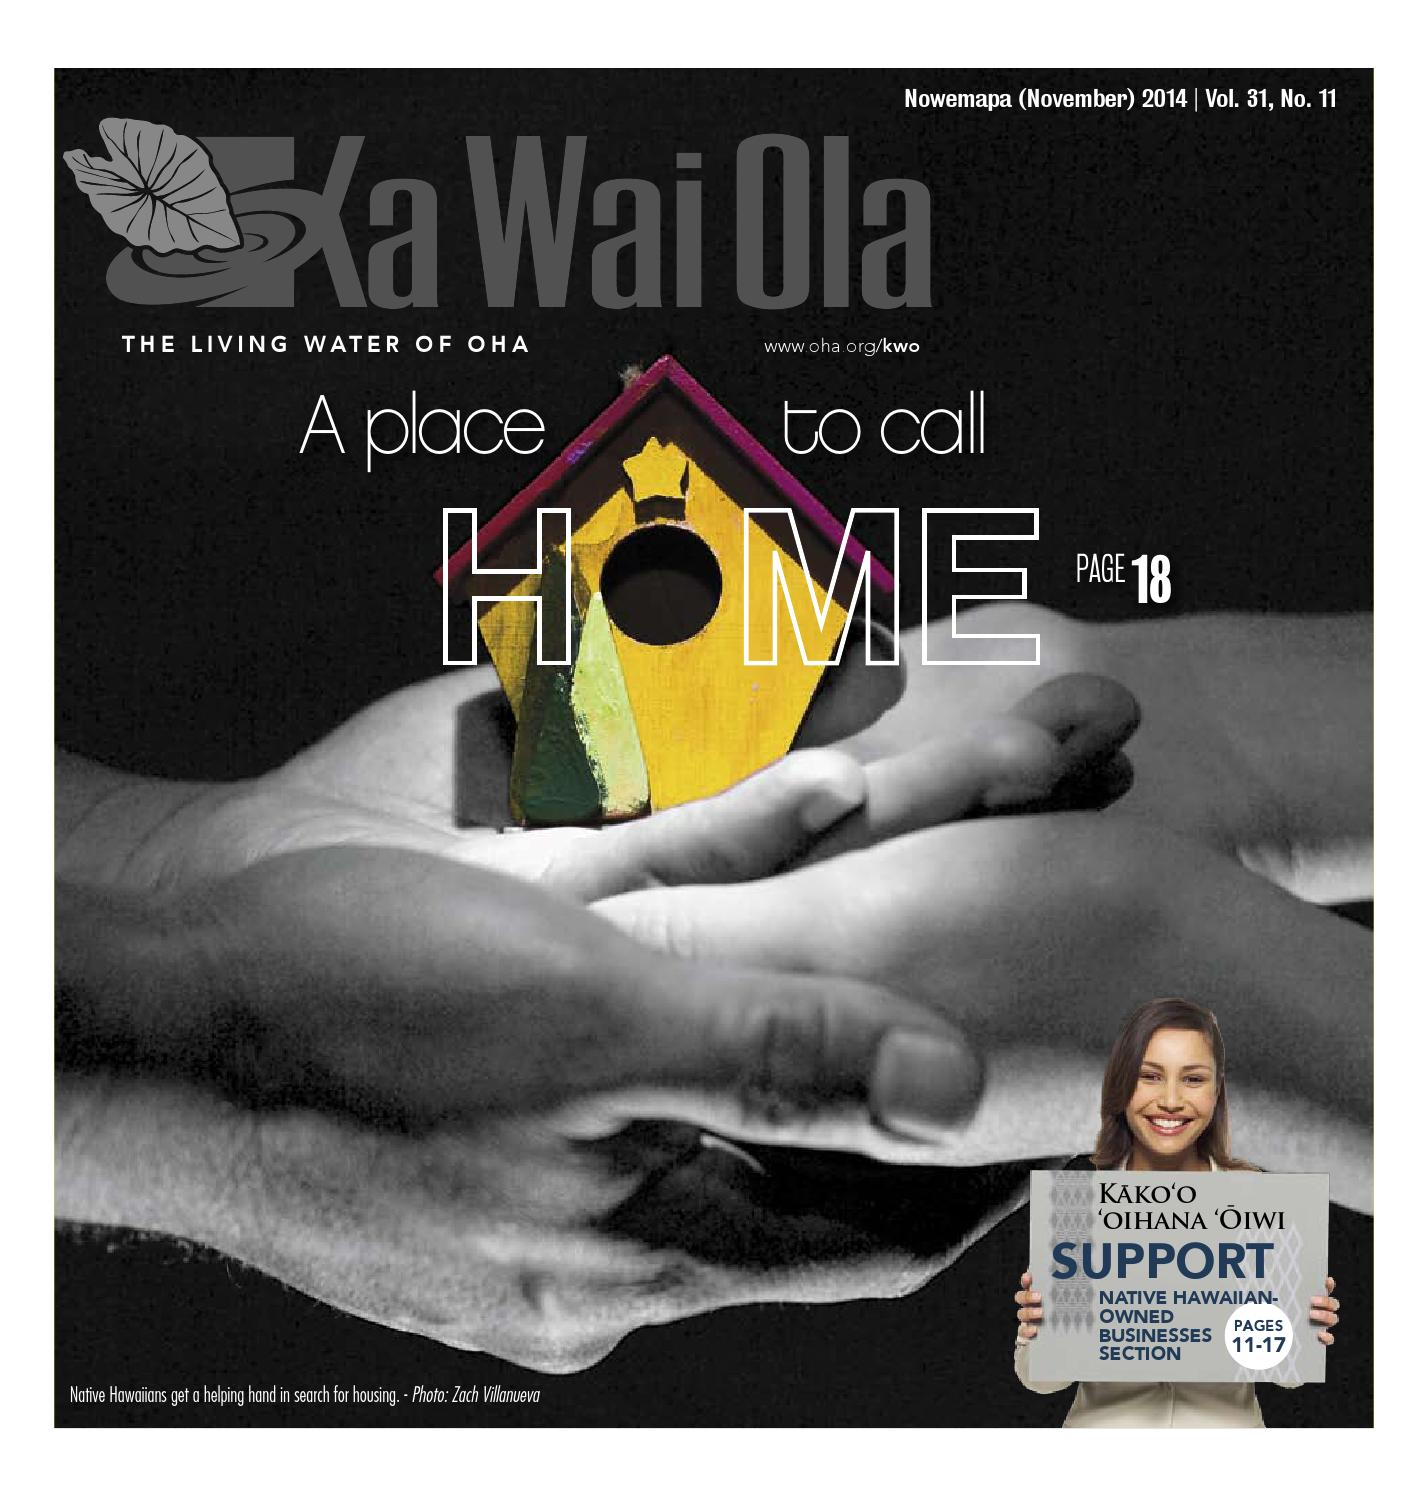 KWO - November 2014 | Vol. 31, No. 11 by Ka Wai Ola o OHA - The Living Water - issuu